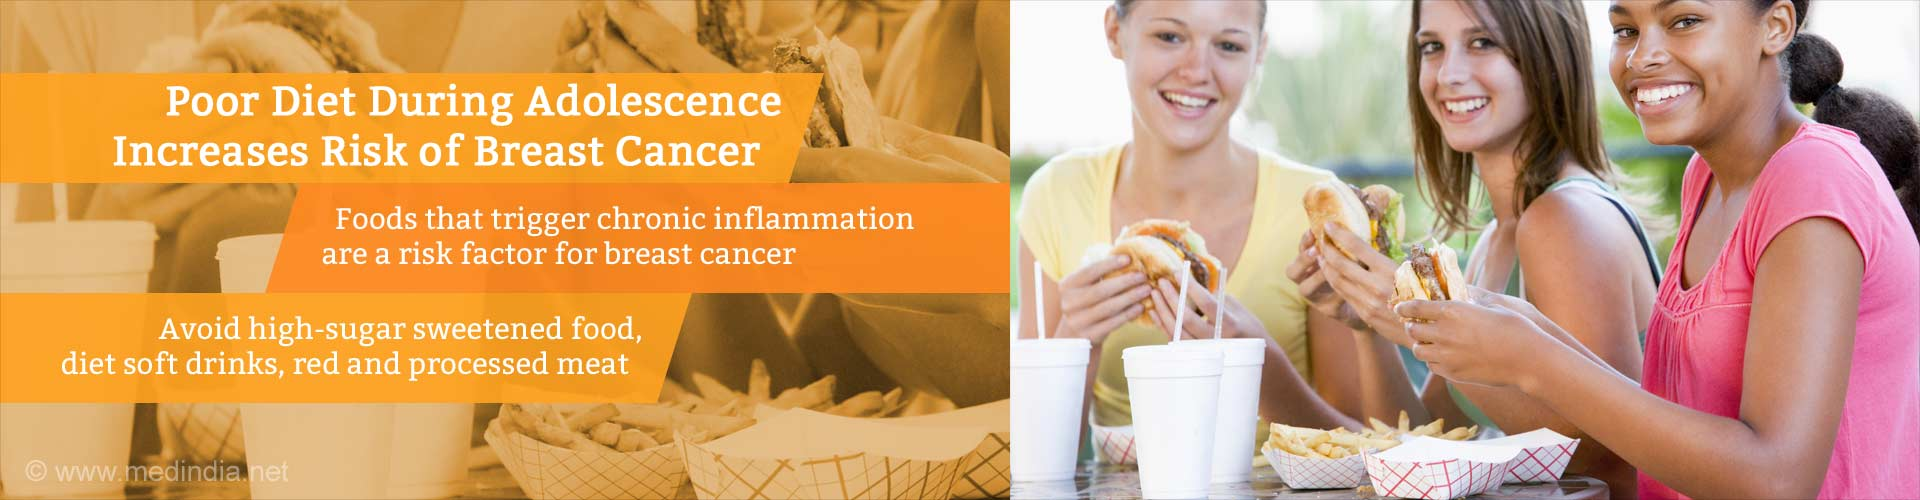 Poor Adolescent Diet Choices Increase Risk of Breast Cancer